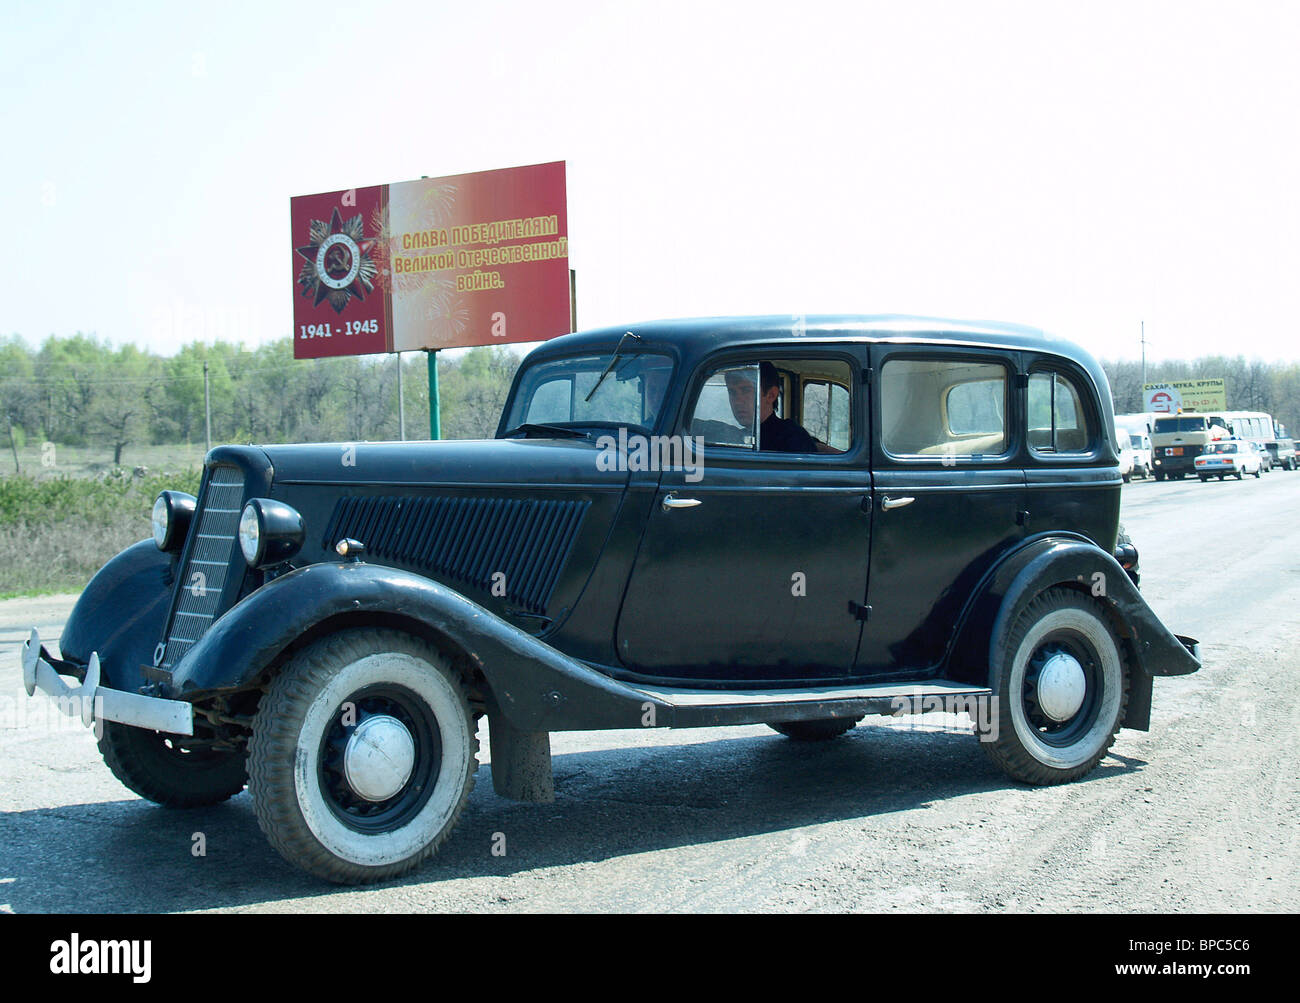 Vintage Automobiles Parade in Saratov Stock Photo: 31000486 - Alamy